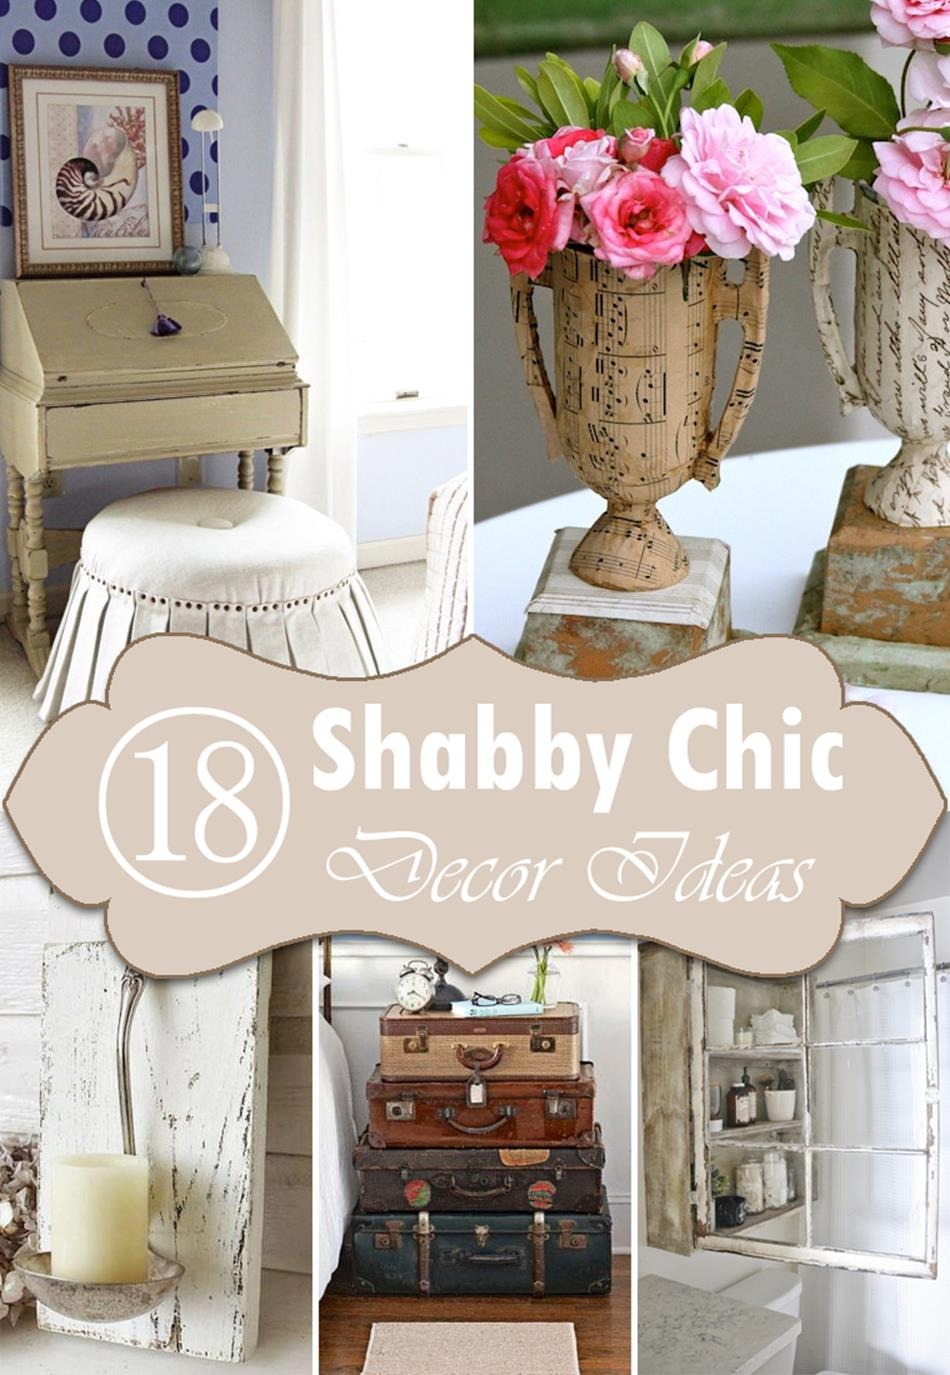 Shabby Chic Living Room Decorating on A Budget 4